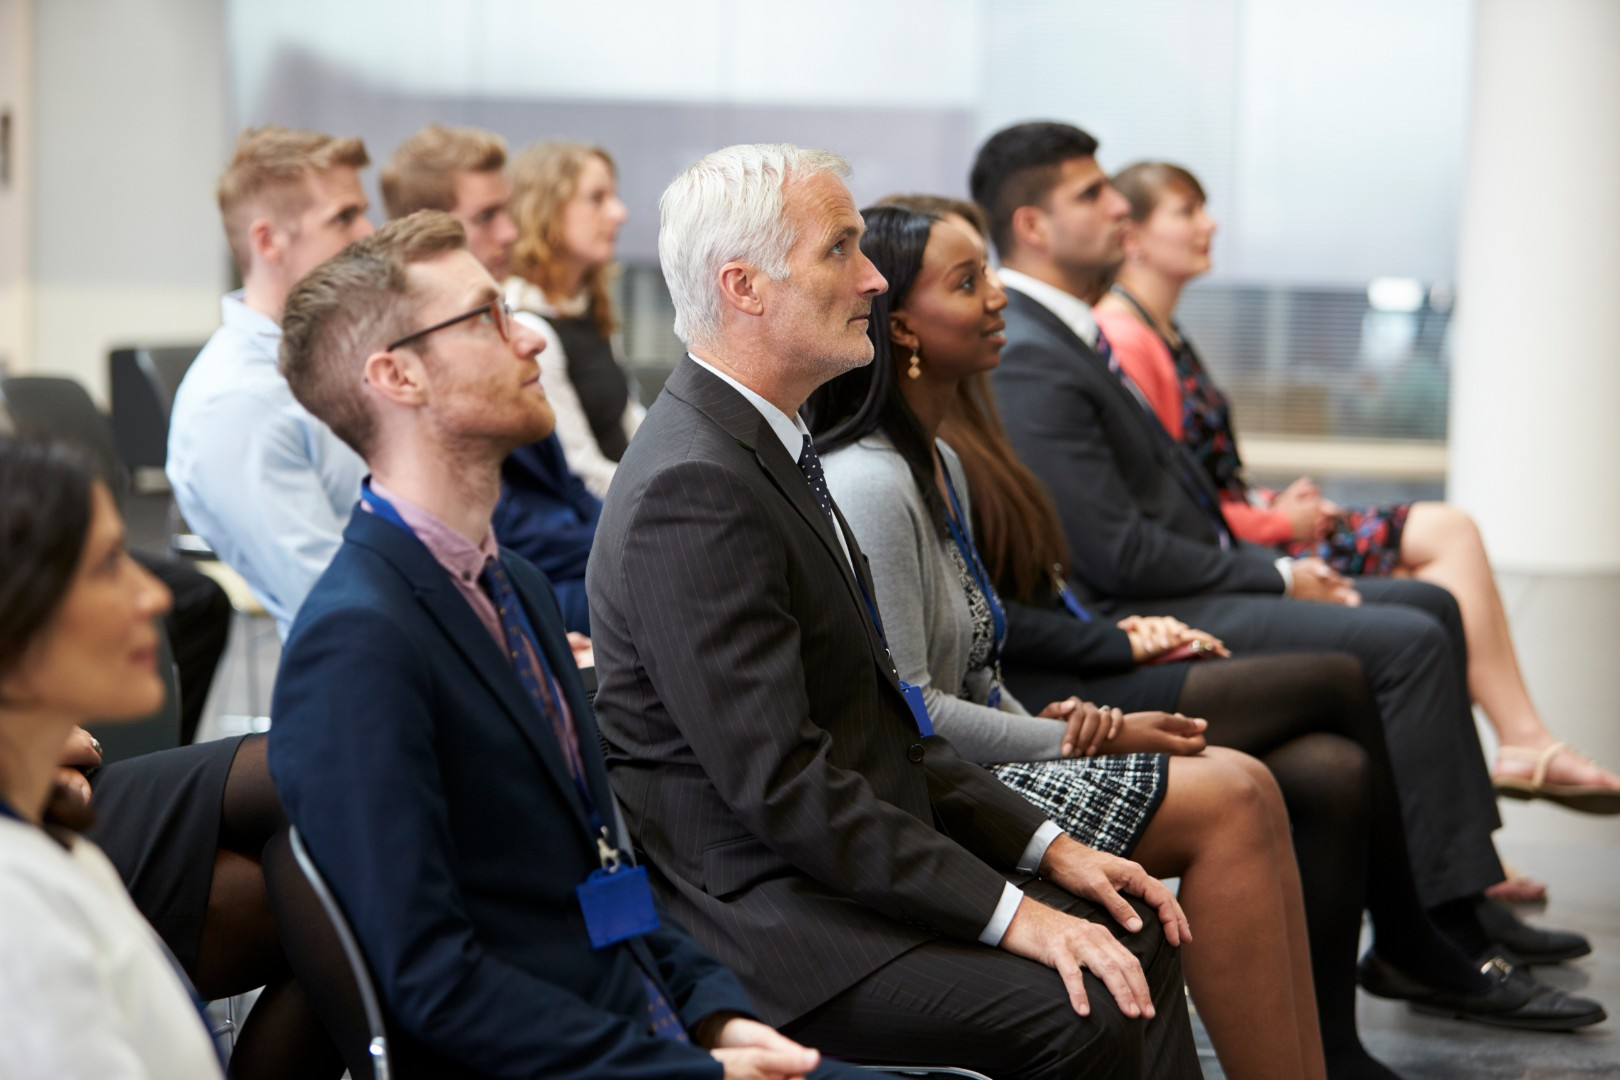 audience-listening-to-speaker-at-conference